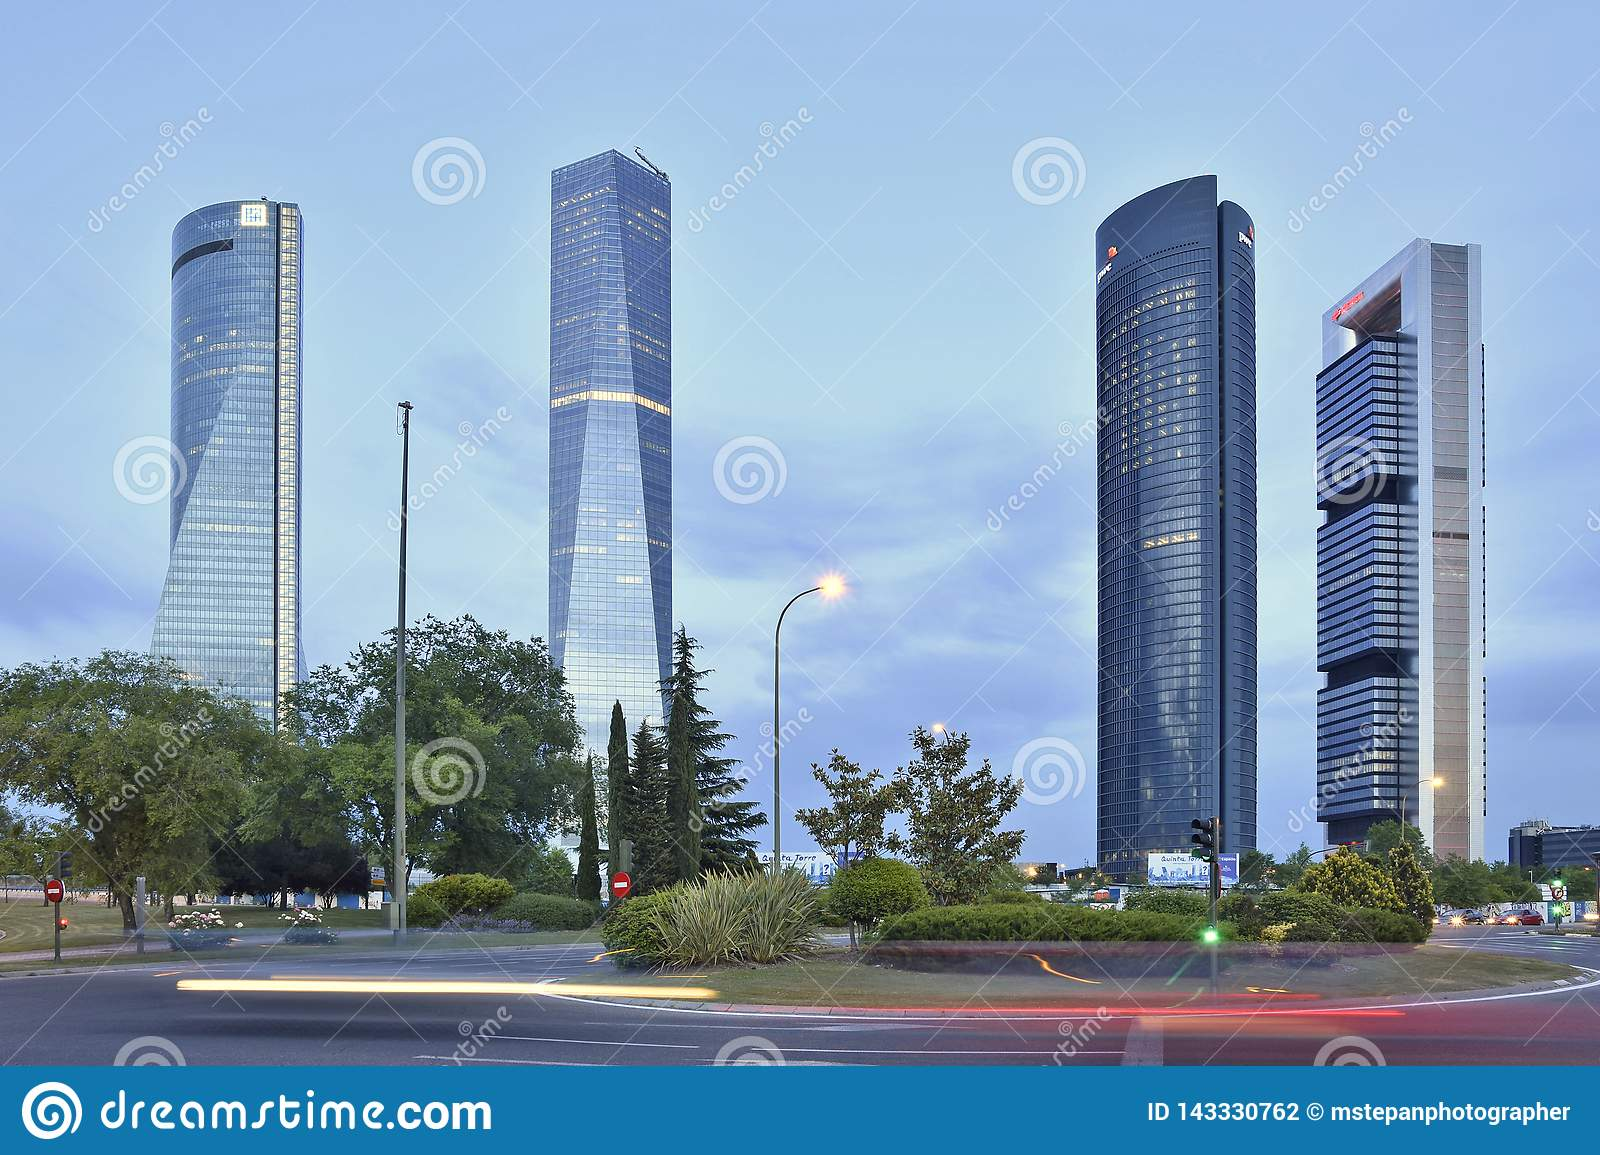 Four Towers modern office skyscrapers in Madrid Spain